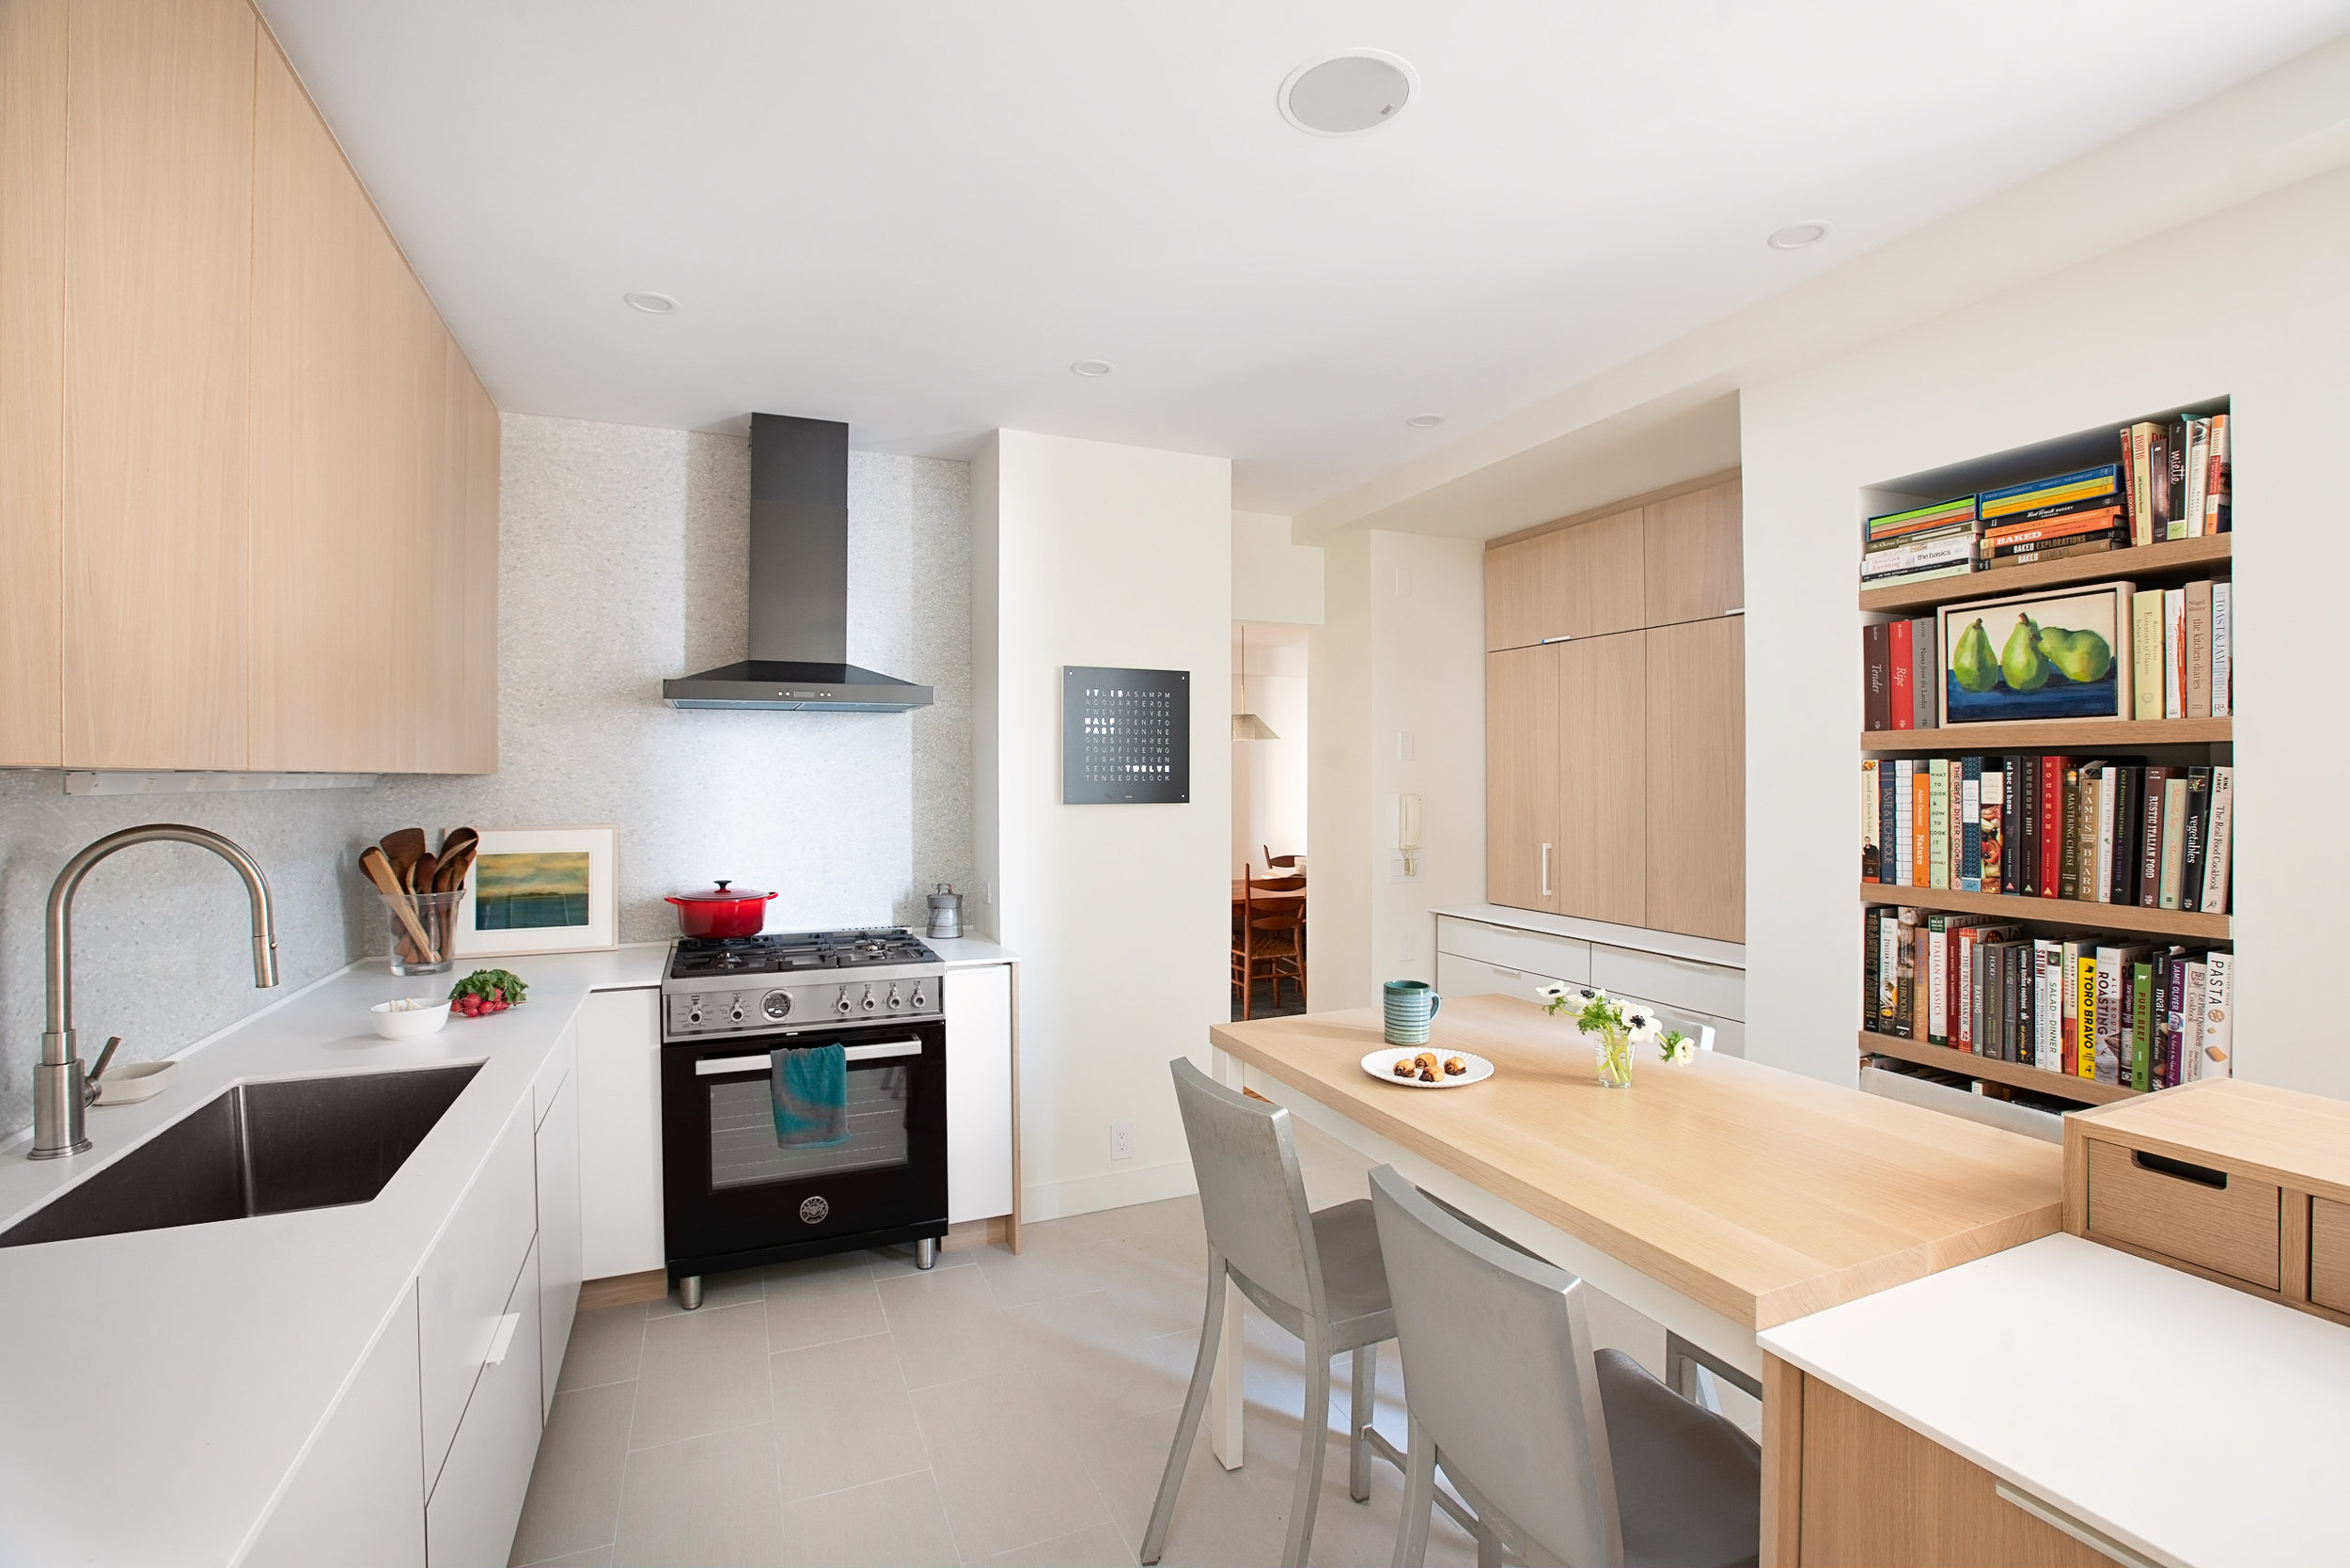 Henrybuilt-Kitchen-Oak-White-Park-Slope-Brooklyn-JMorris-Design.jpg